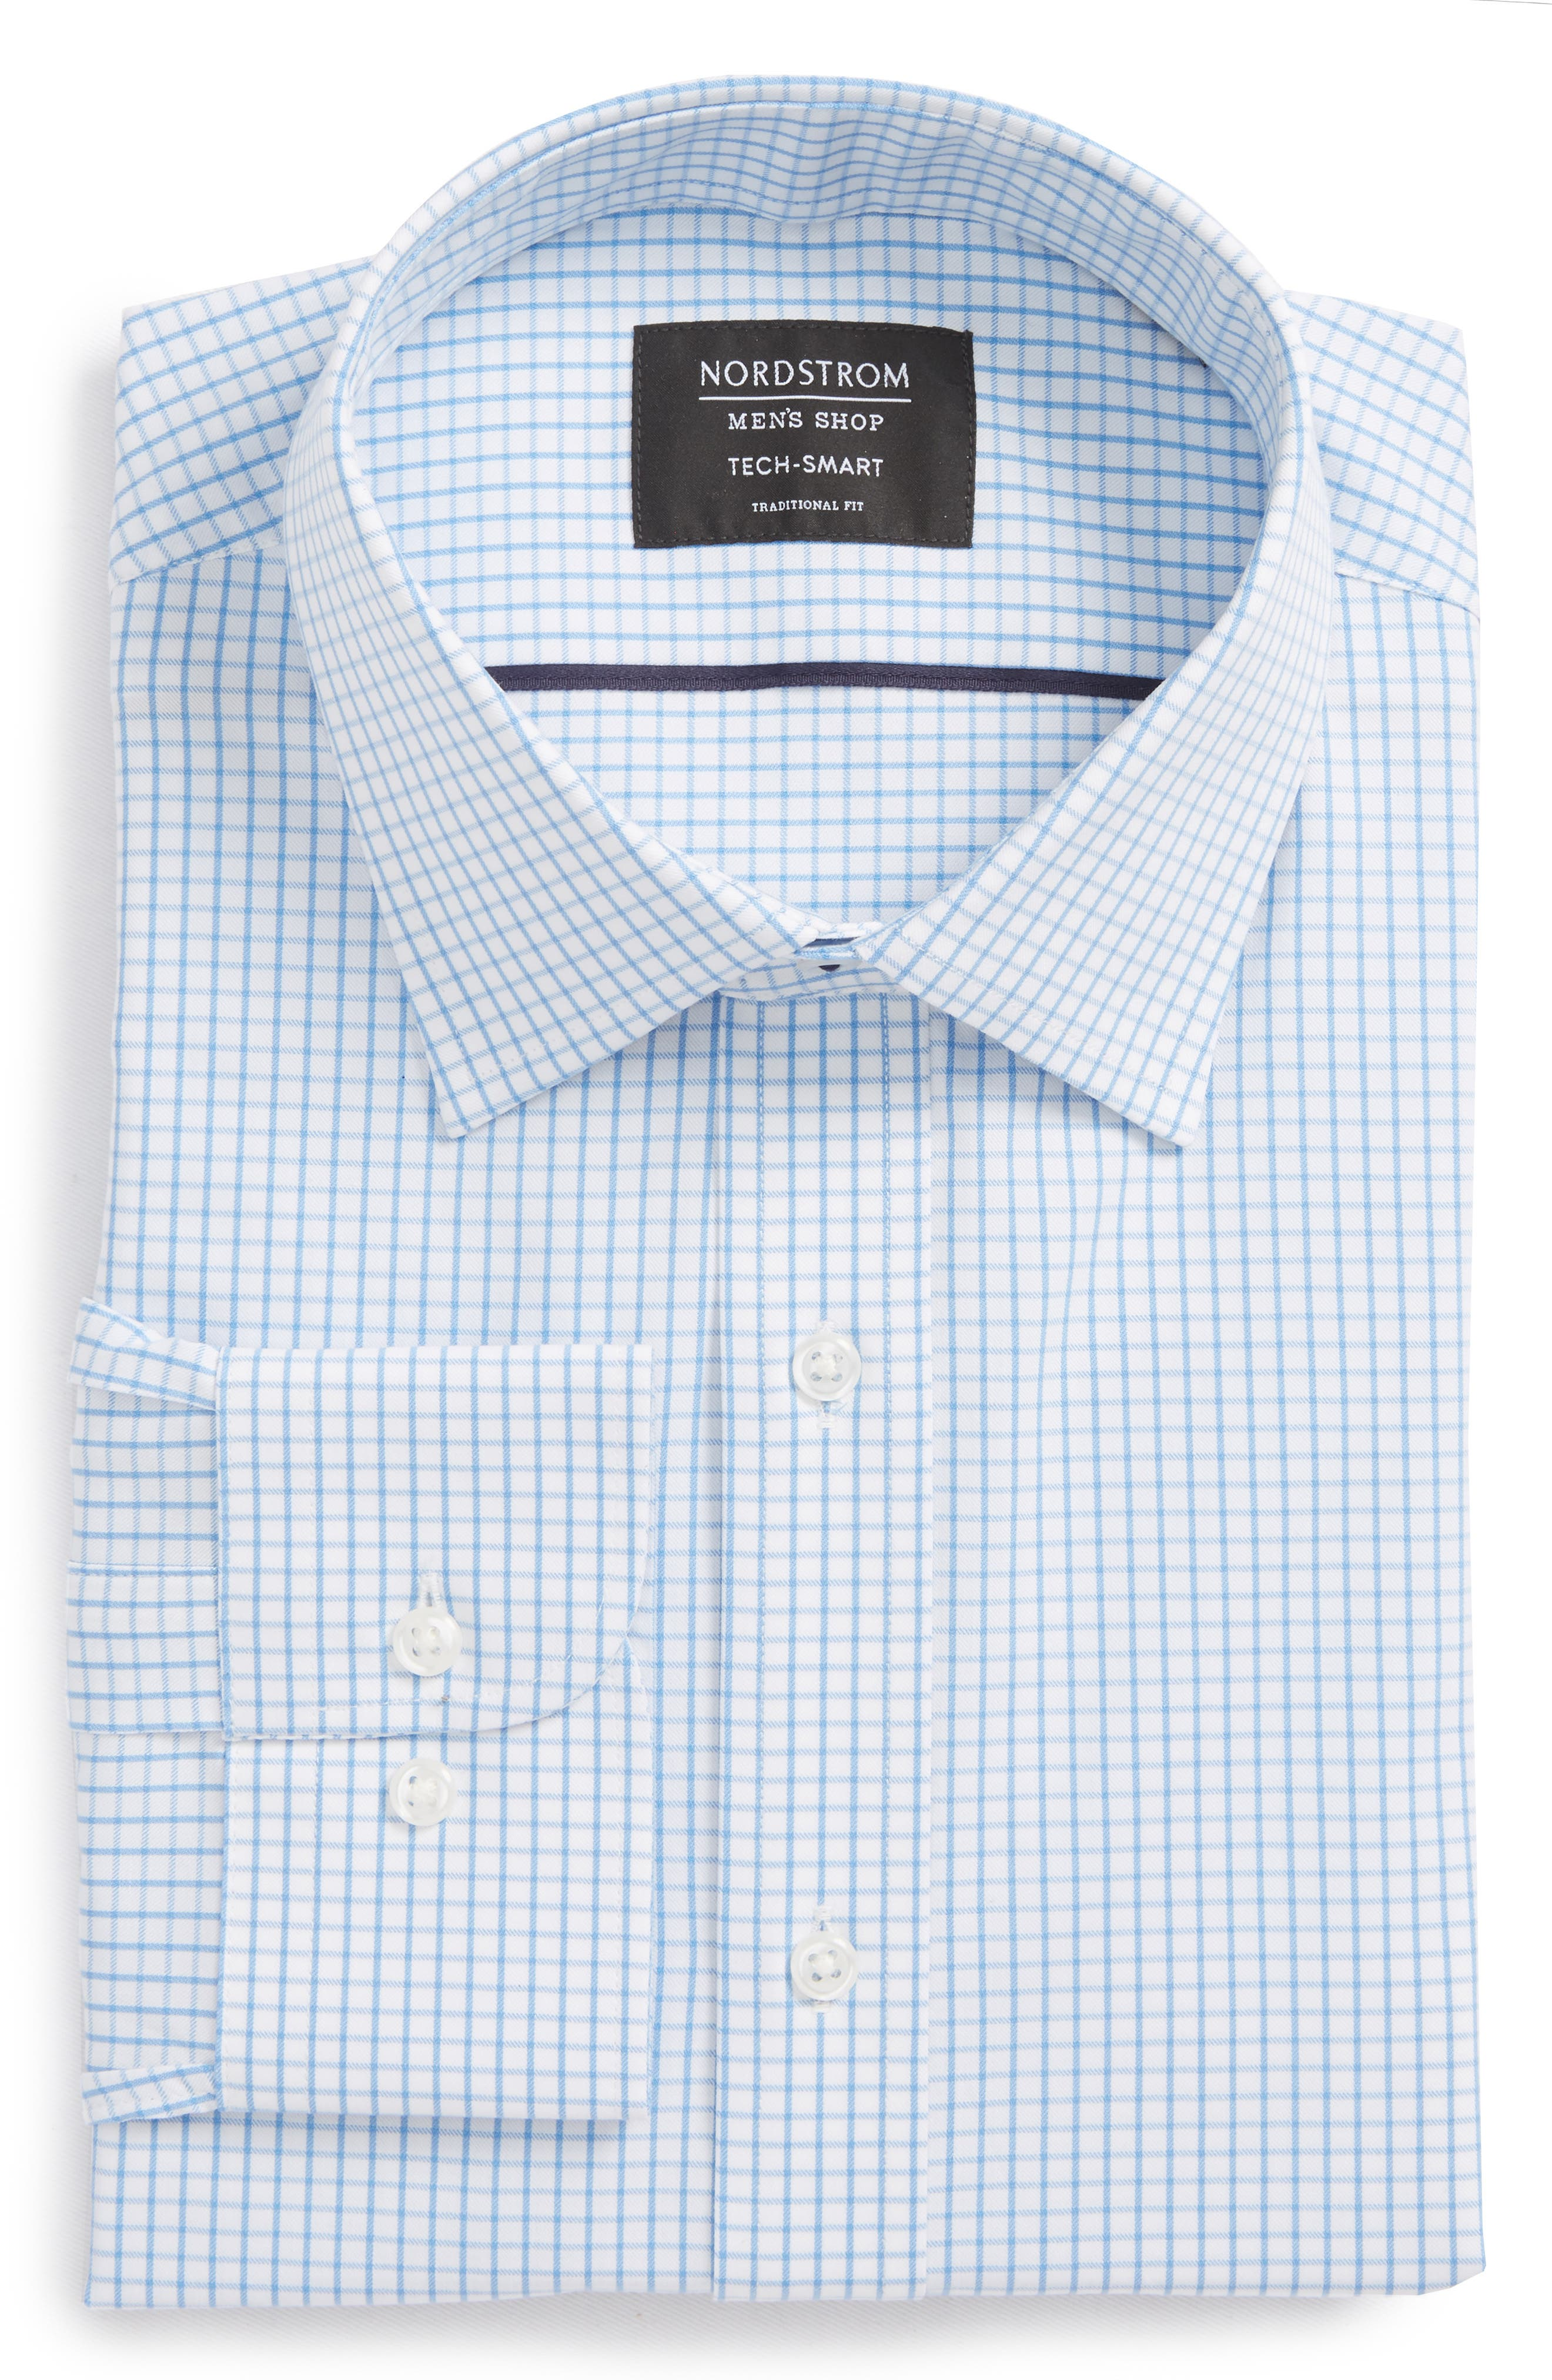 Tech-Smart Traditional Fit Stretch Tattersall Dress Shirt,                             Main thumbnail 1, color,                             450